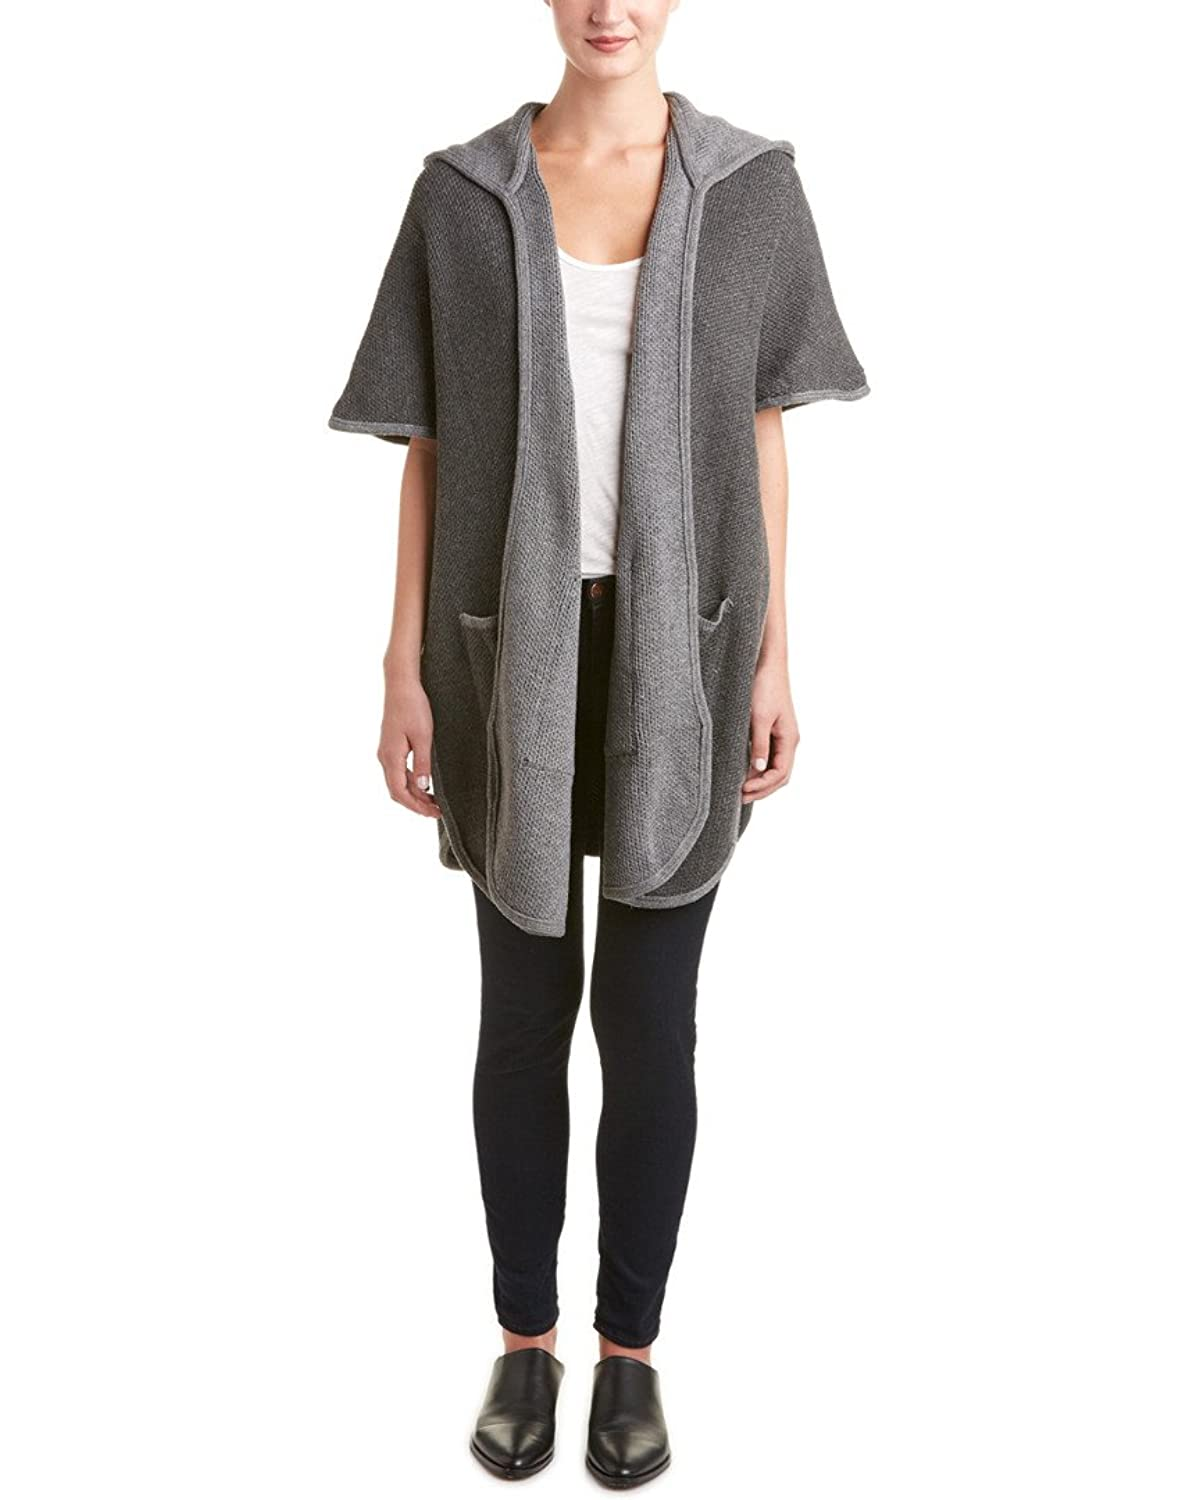 People's Project La Contrast Mohair-Blend Cardigan